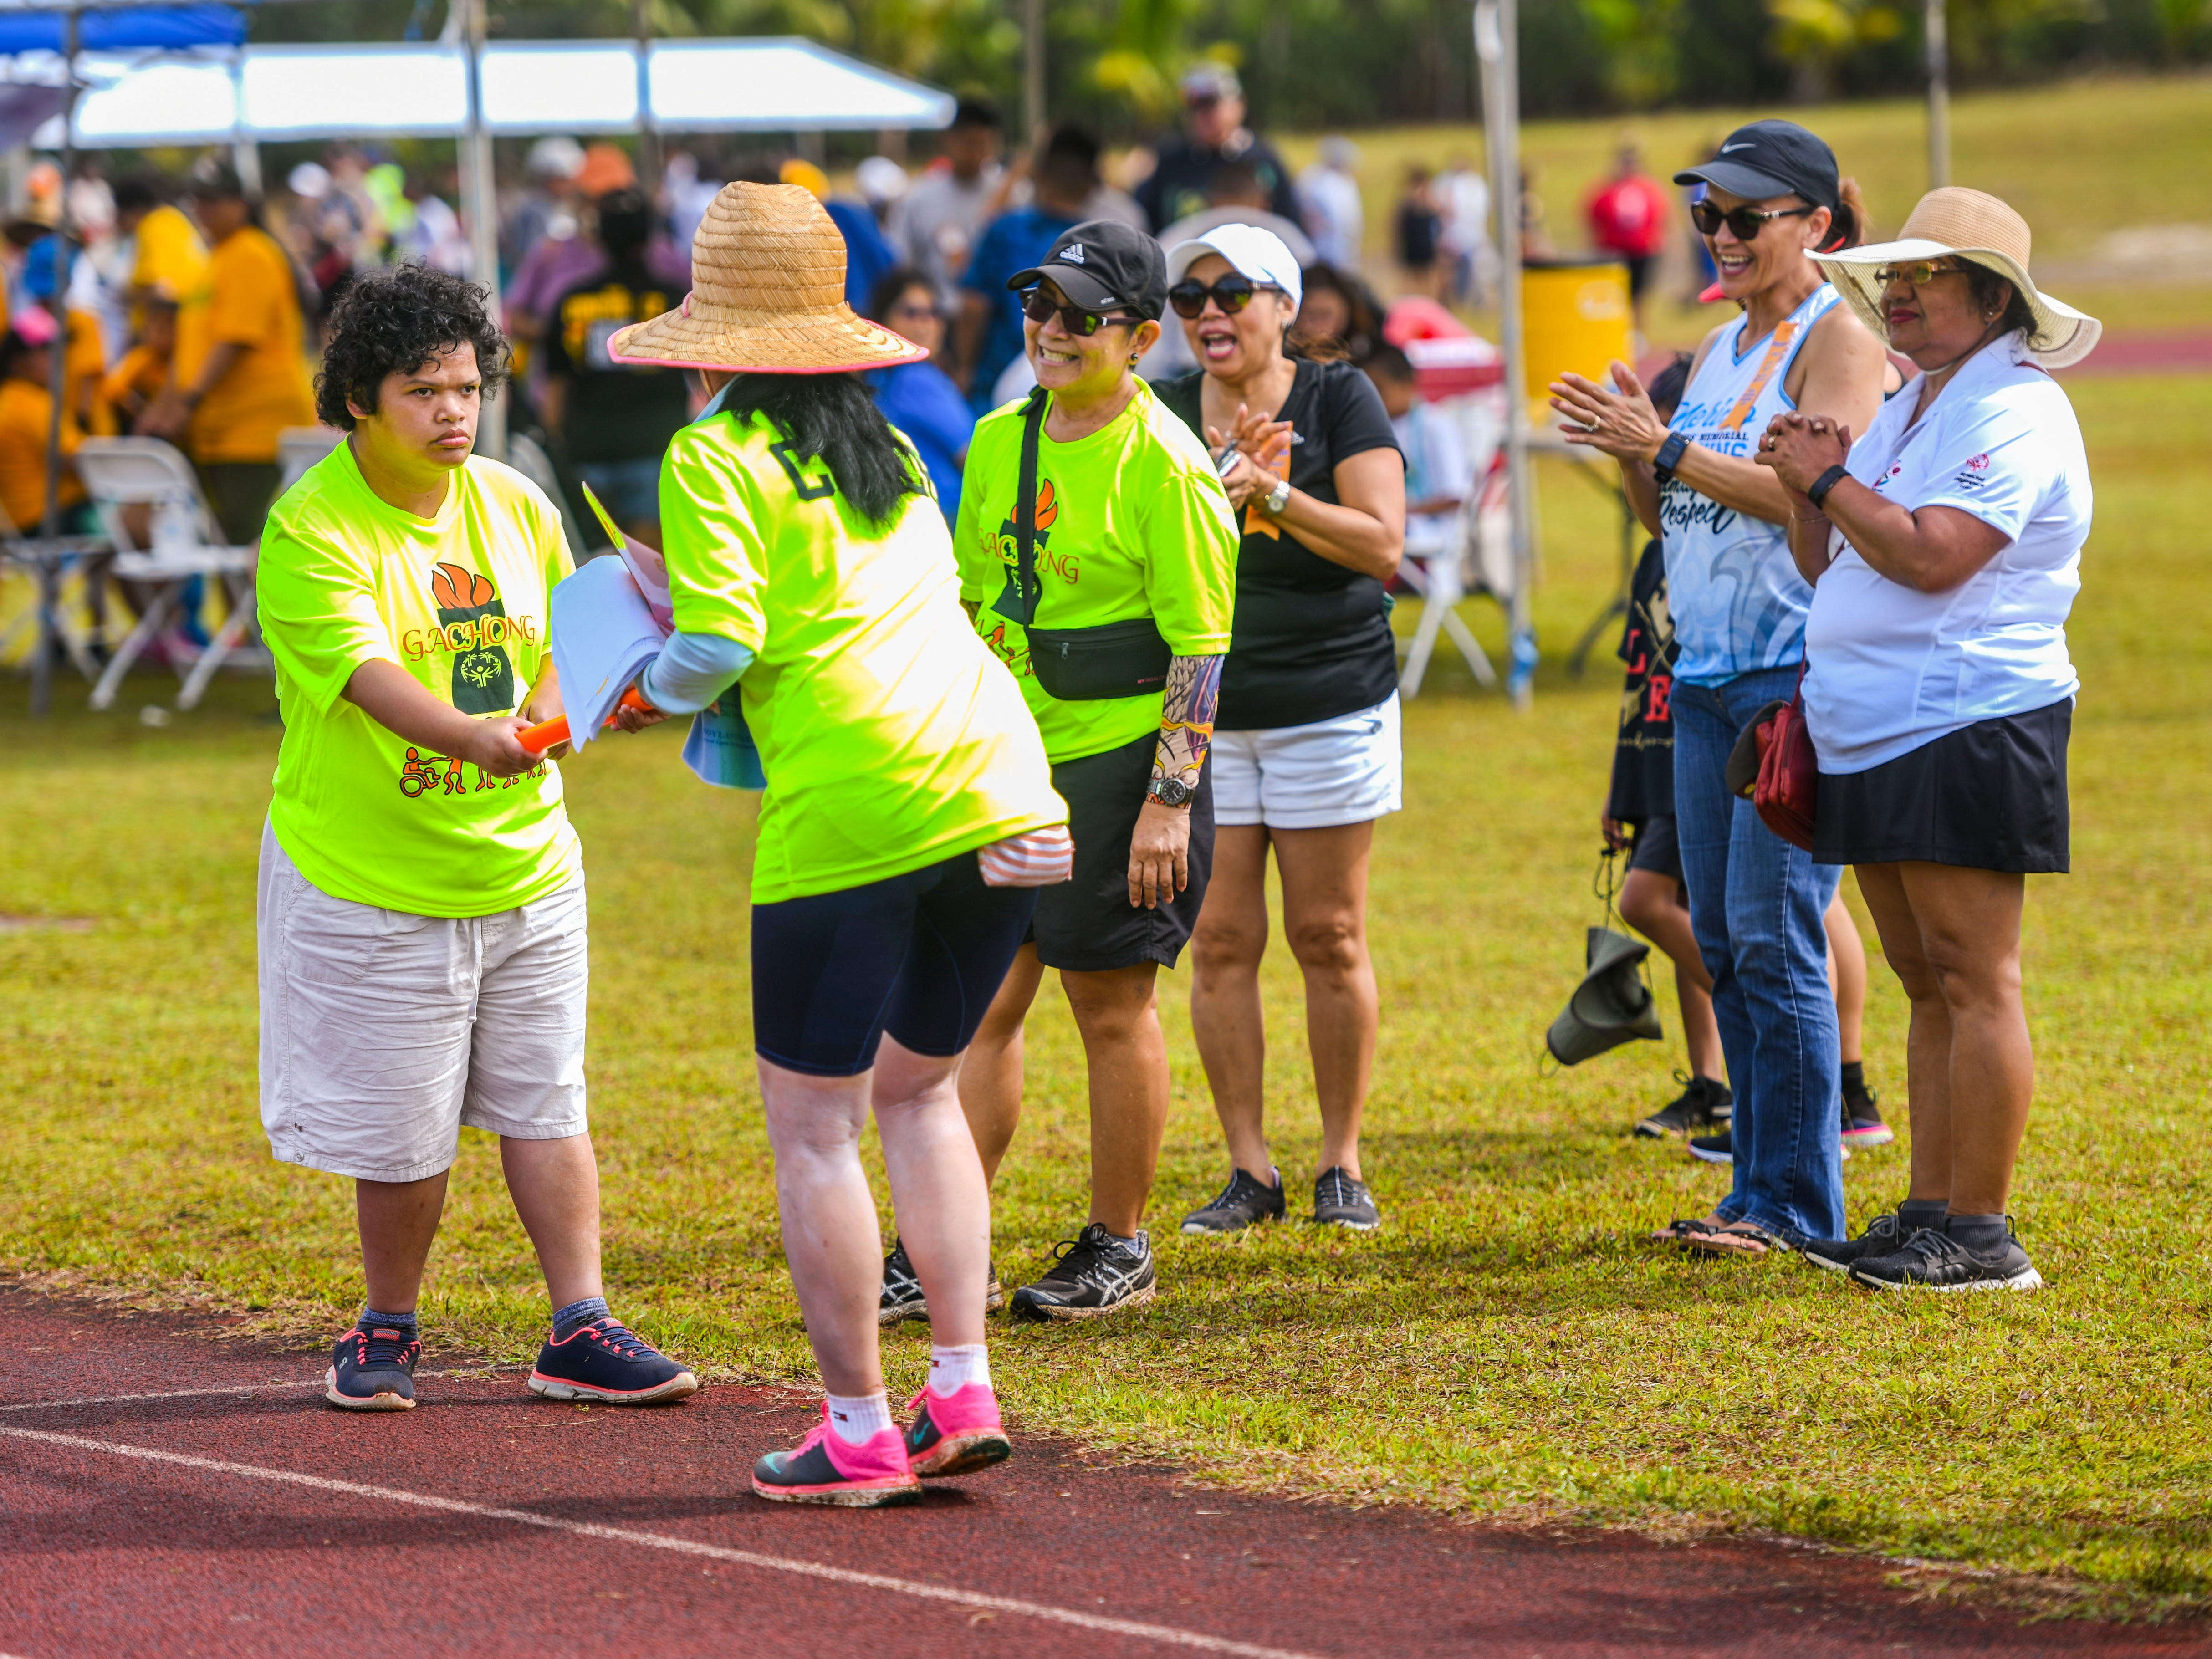 Spectators and volunteers cheer on Special Olympian Amy Vegafria during her participation at the 43rd Special Olympics Guam Track & Field competition at Okkodo High School in Dededo on Saturday, March 16, 2019.